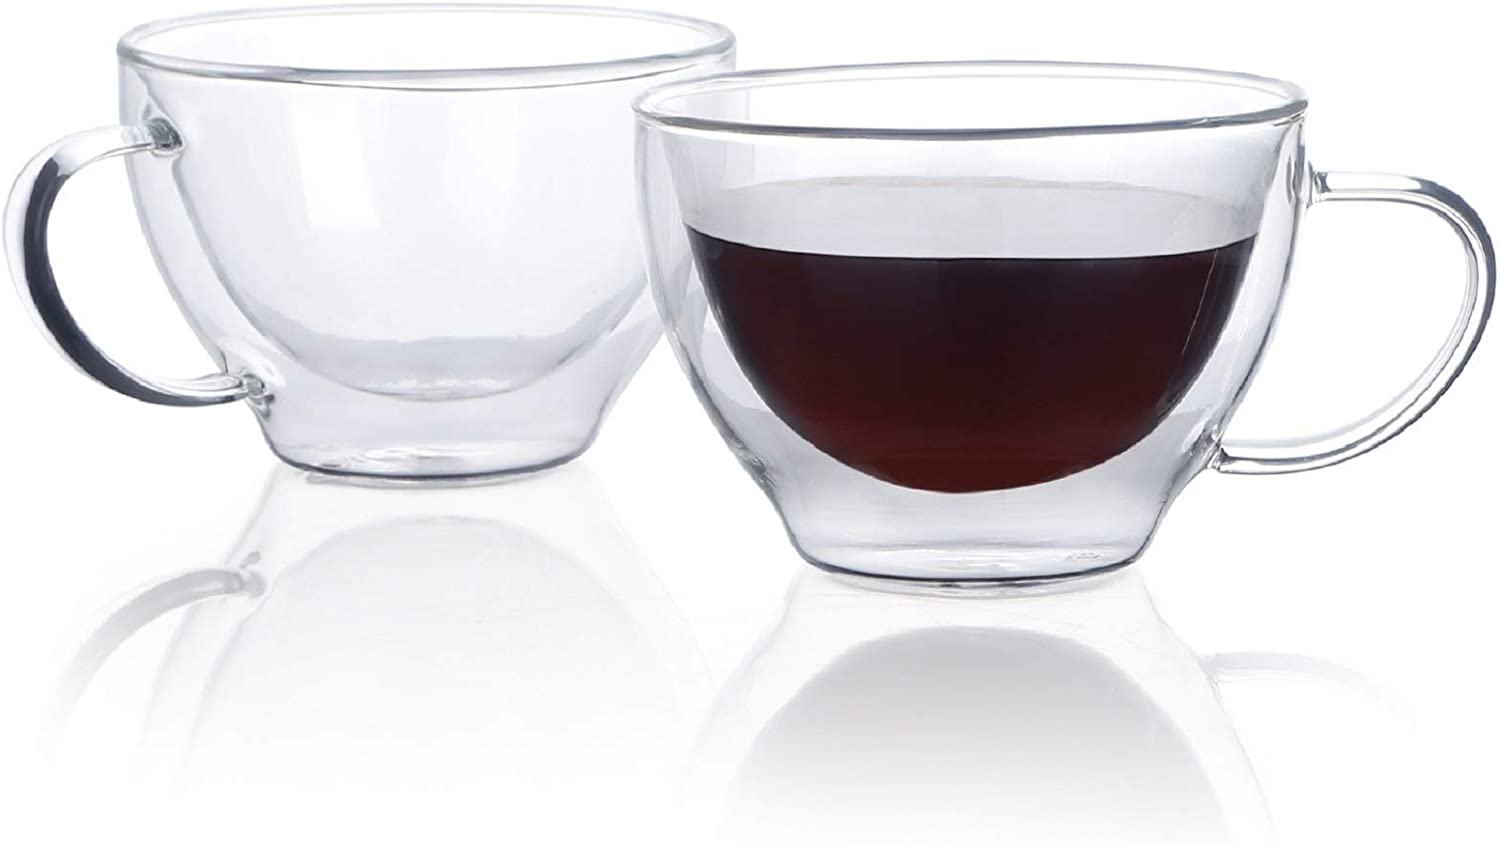 Sweese 422.101 Glass Espresso Cups - 8oz Double Wall Insulated Cups with Handle, Perfect for Hot Beverages - Espresso Coffee, Latte, Cappuccino, set of 2